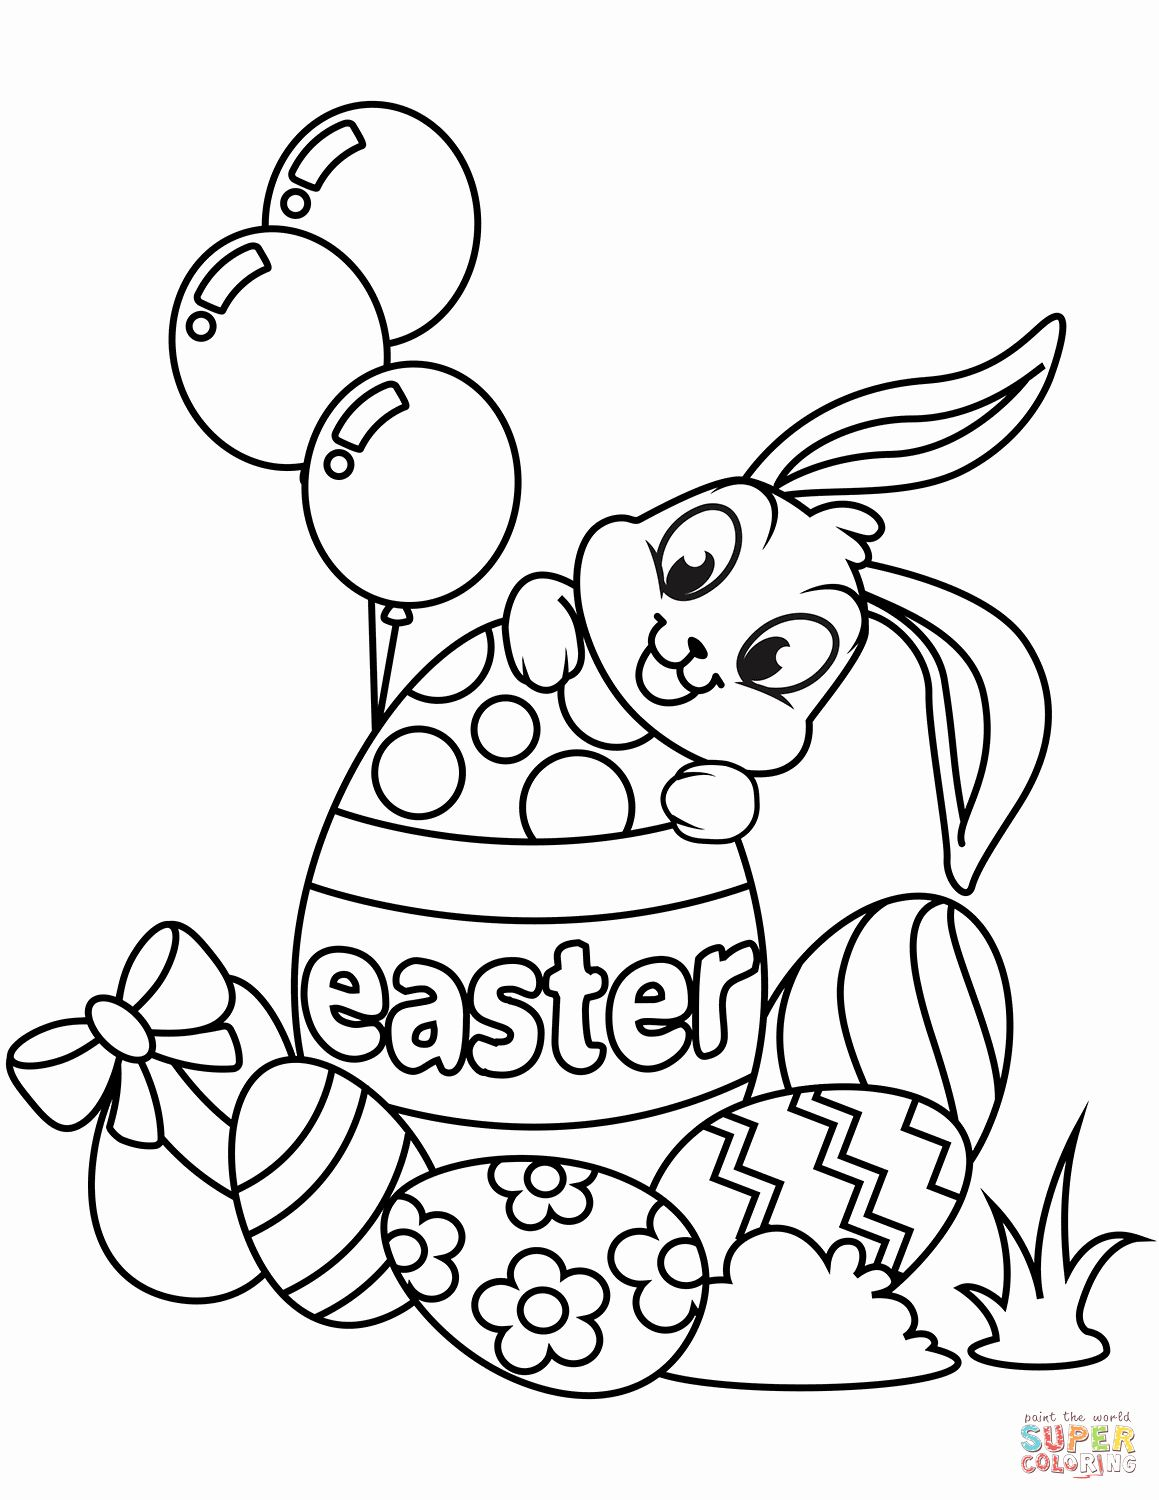 24 Printable Easter Bunny Coloring Pages Djmatioca Com In 2020